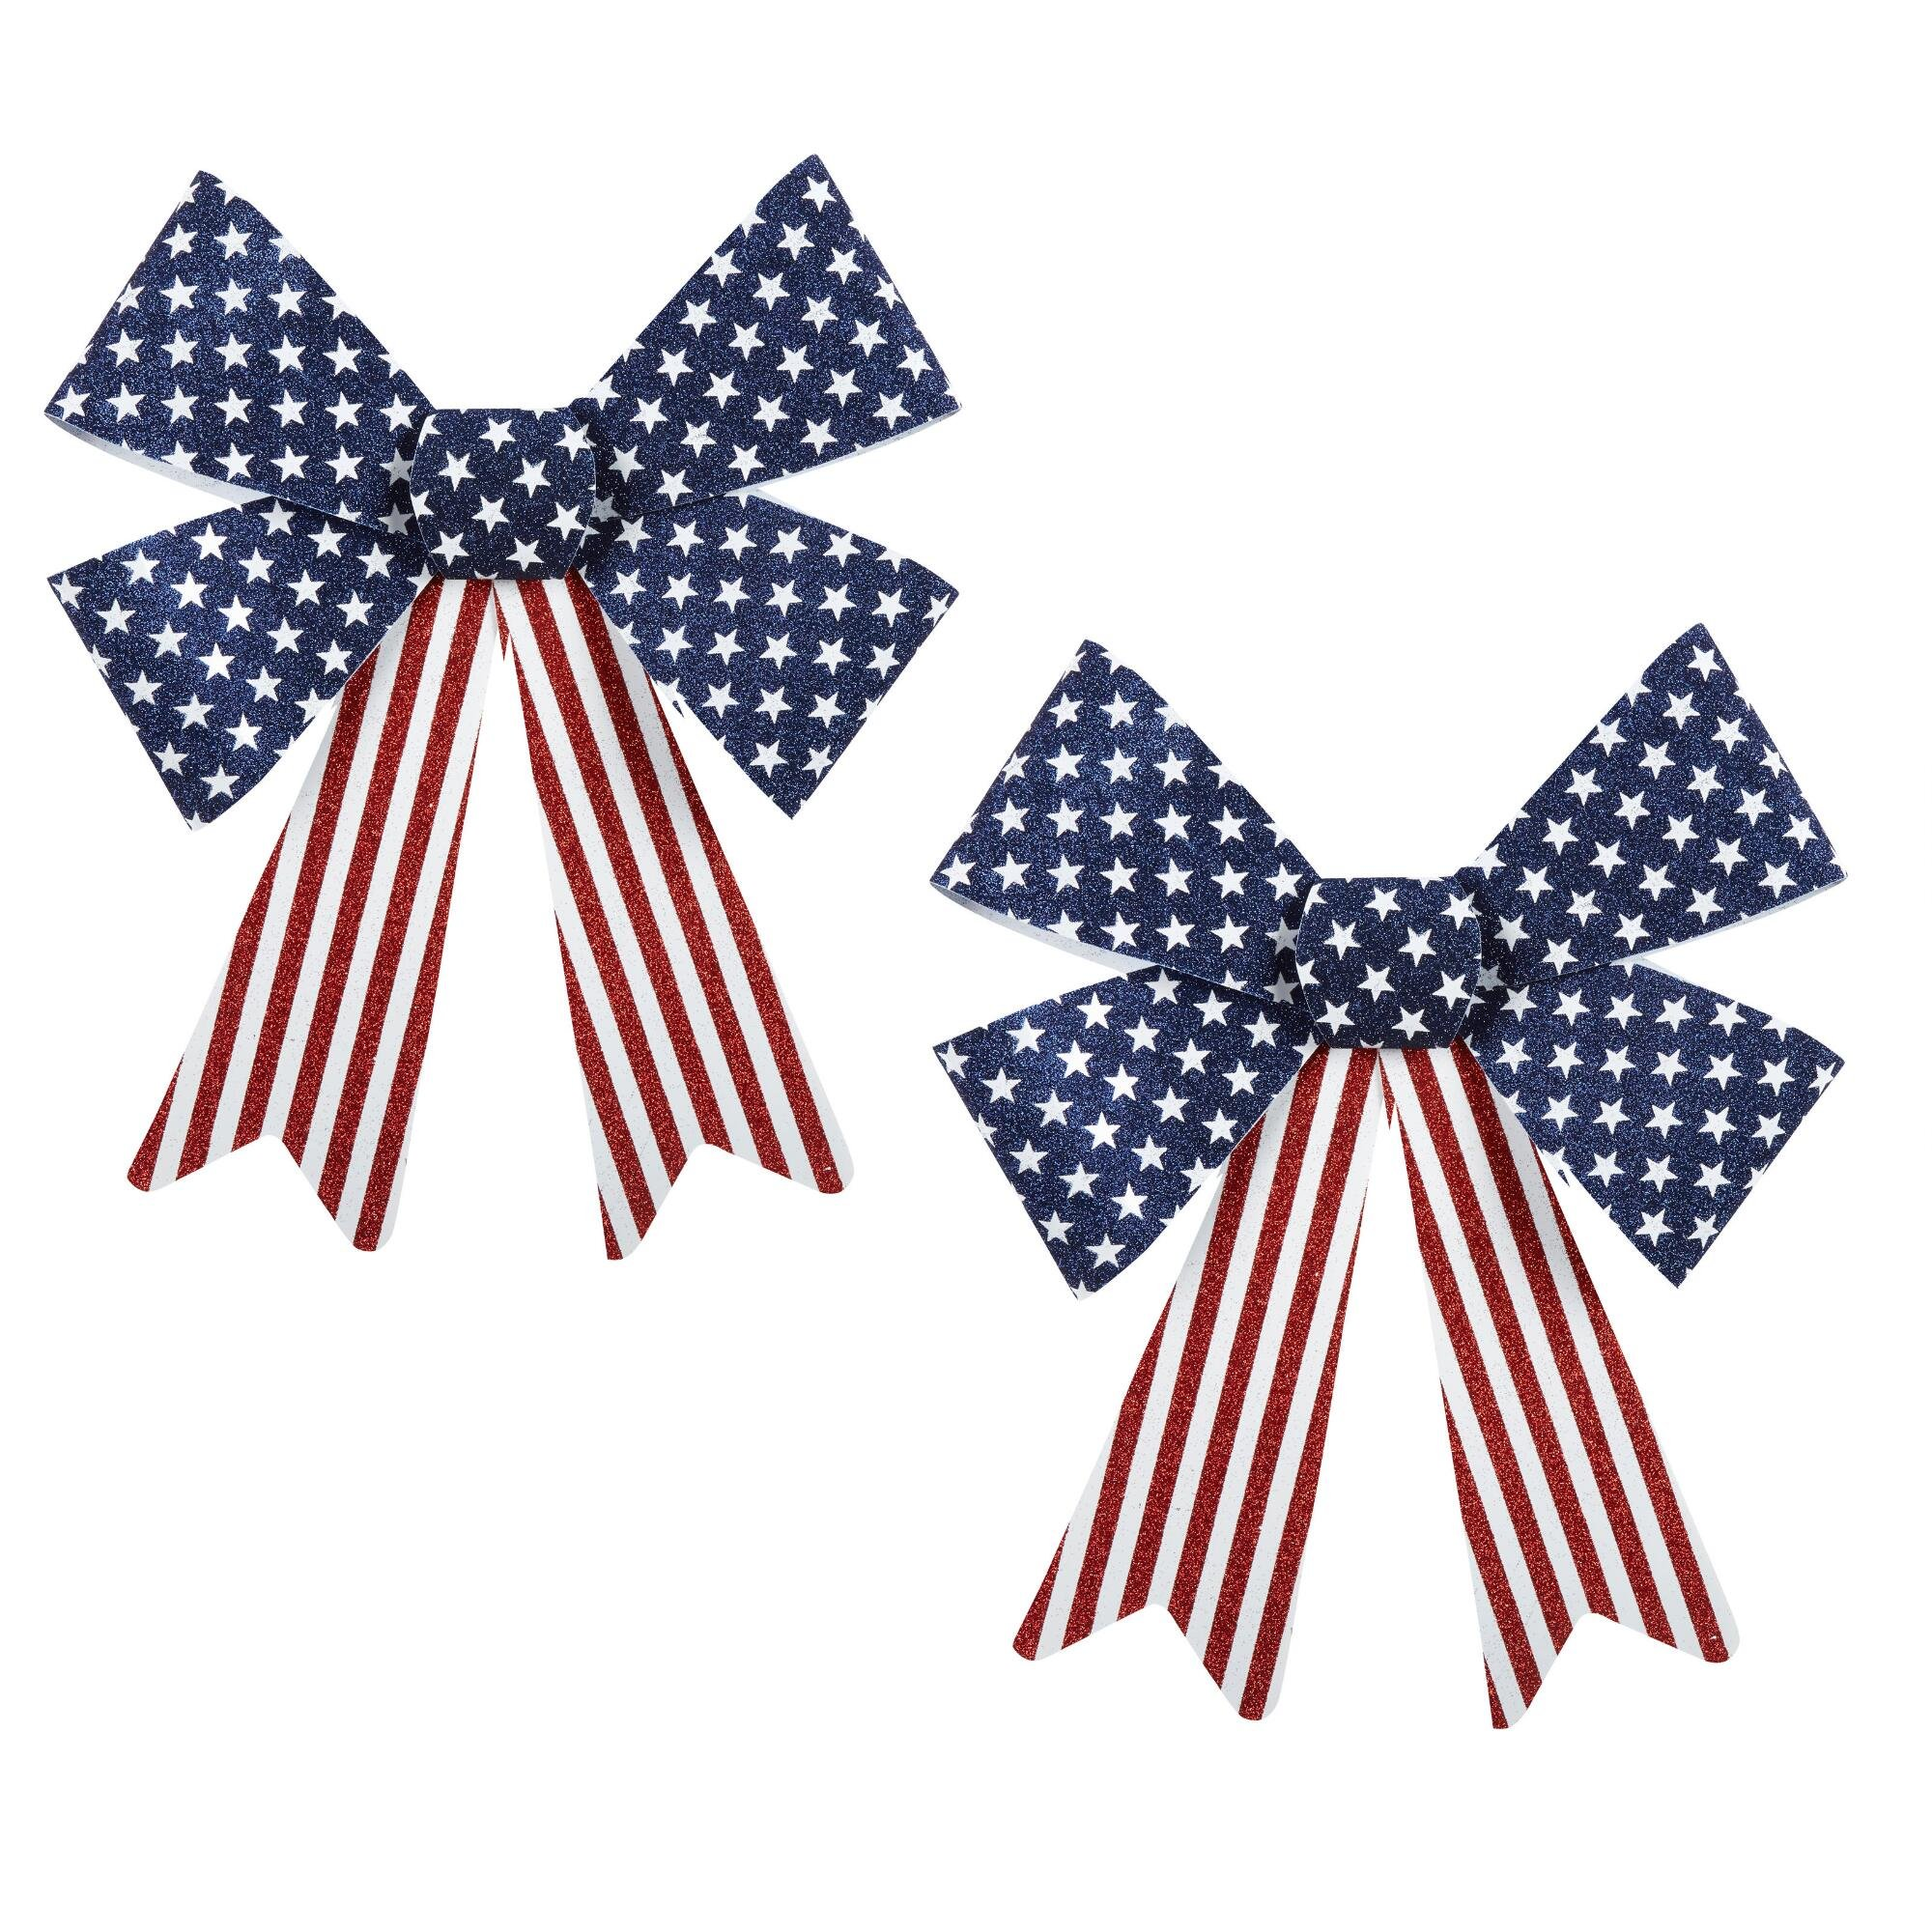 Nantucket Home USA Patriotic Glitter Bow Door Wall Decoration, Set of 2, 17-Inch x 15-Inch